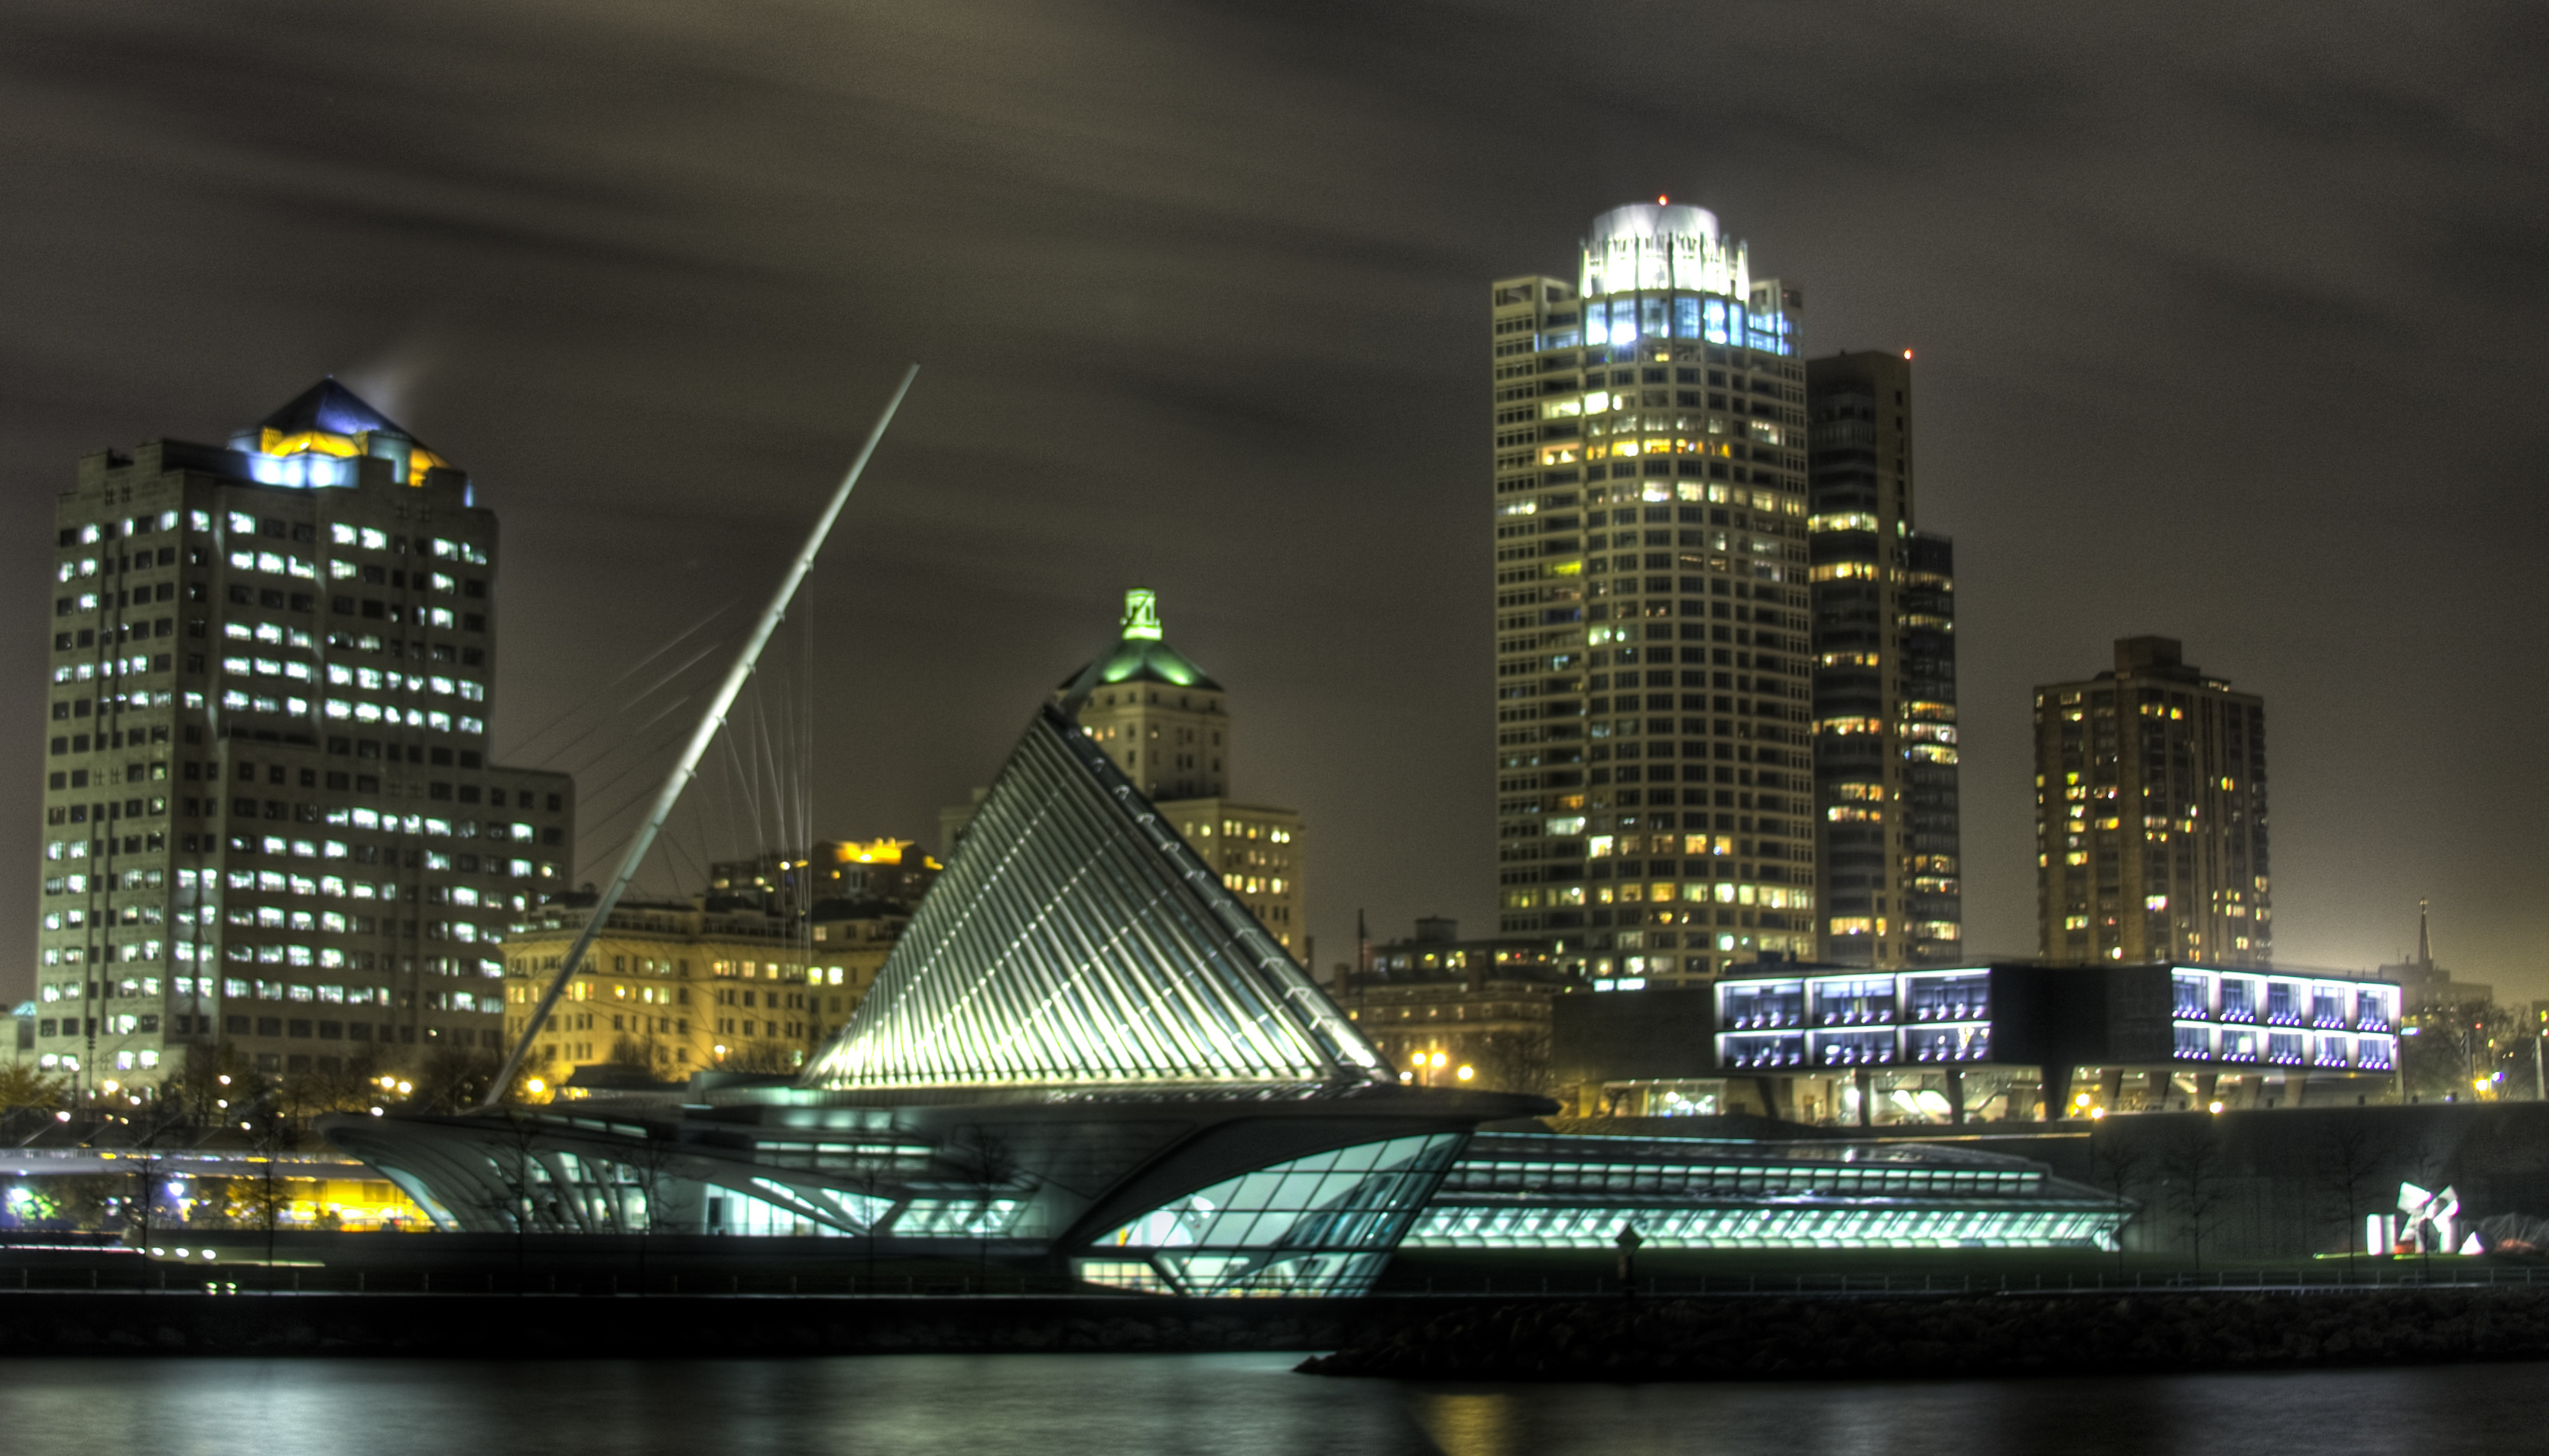 Milwaukee City Wallpapers 62 images 3334x1905